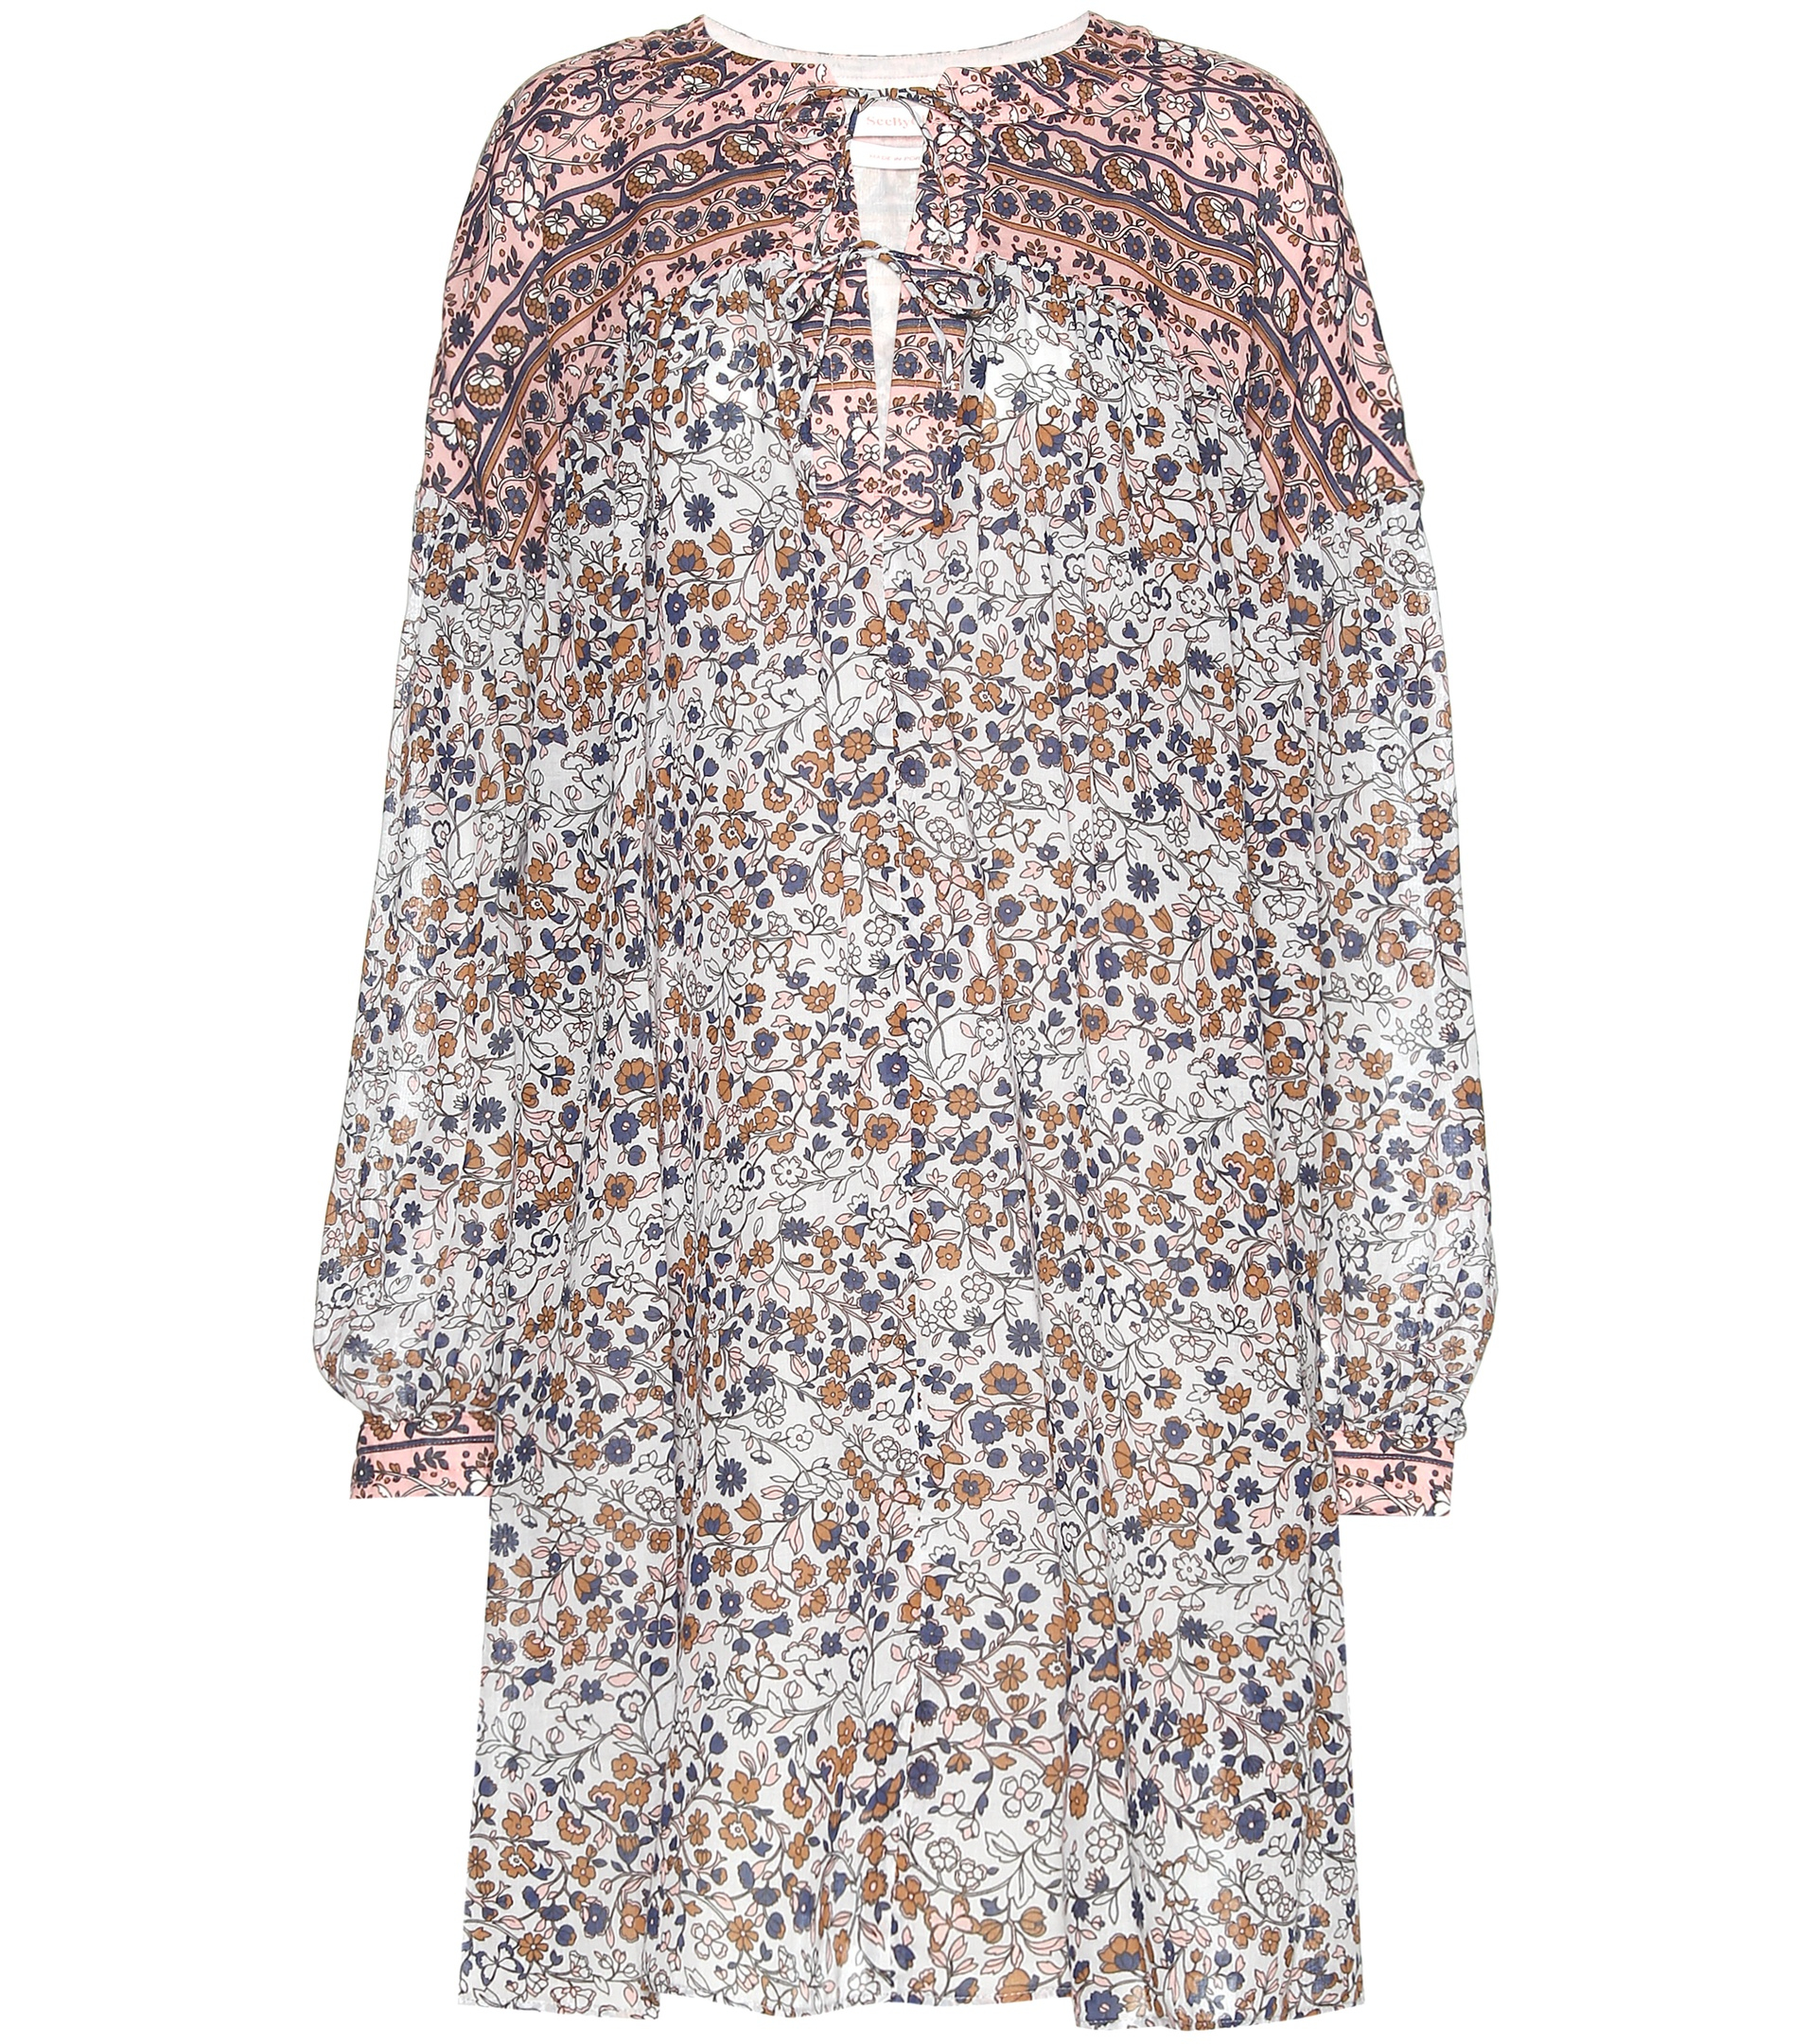 See by chloé Flower Print Dress in White